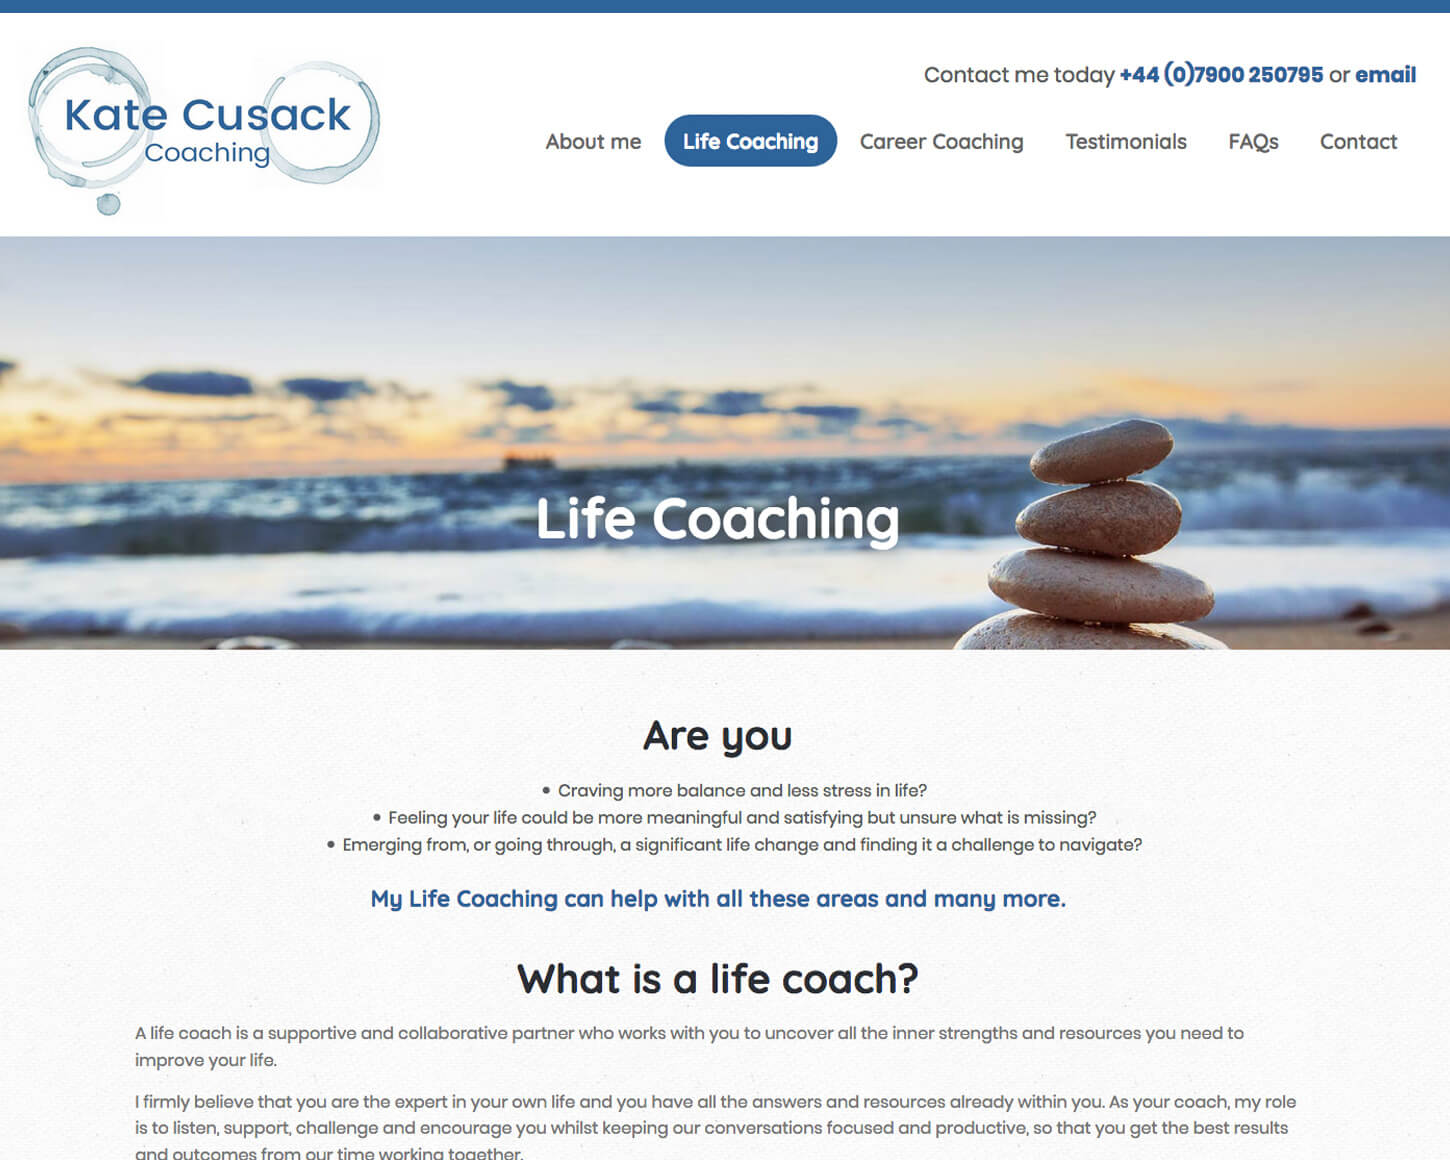 Kate Cusack Coaching website